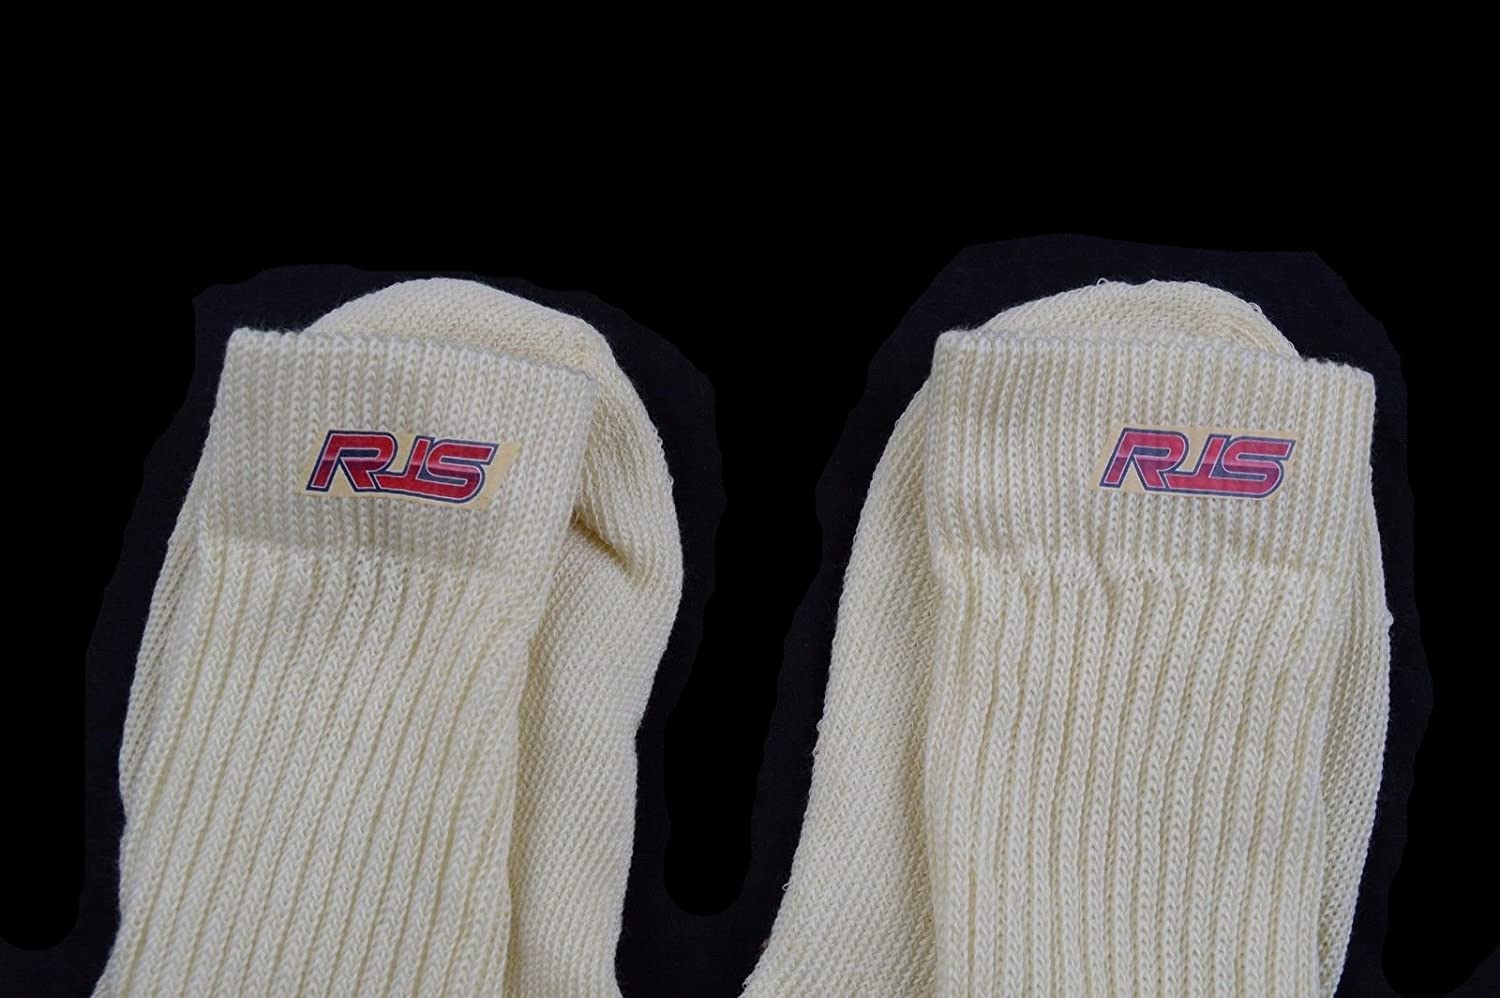 Racing Socks SFI 3.3 Approved White Underwear Socks Nomex RJS Racing Size Large